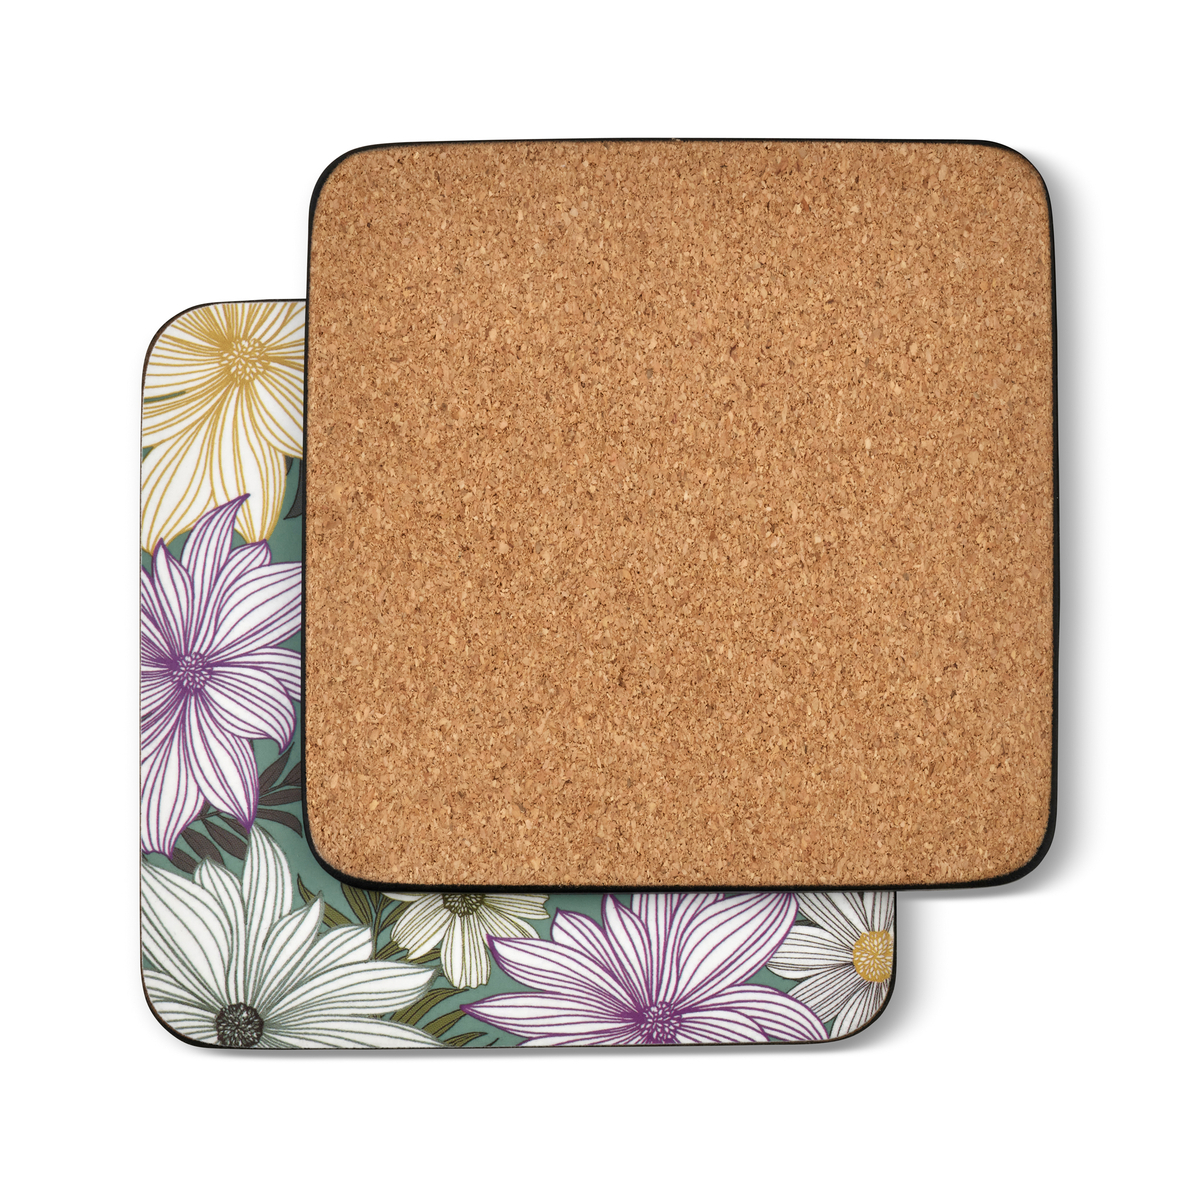 Pimpernel Atrium Coasters Set of 6 image number 1